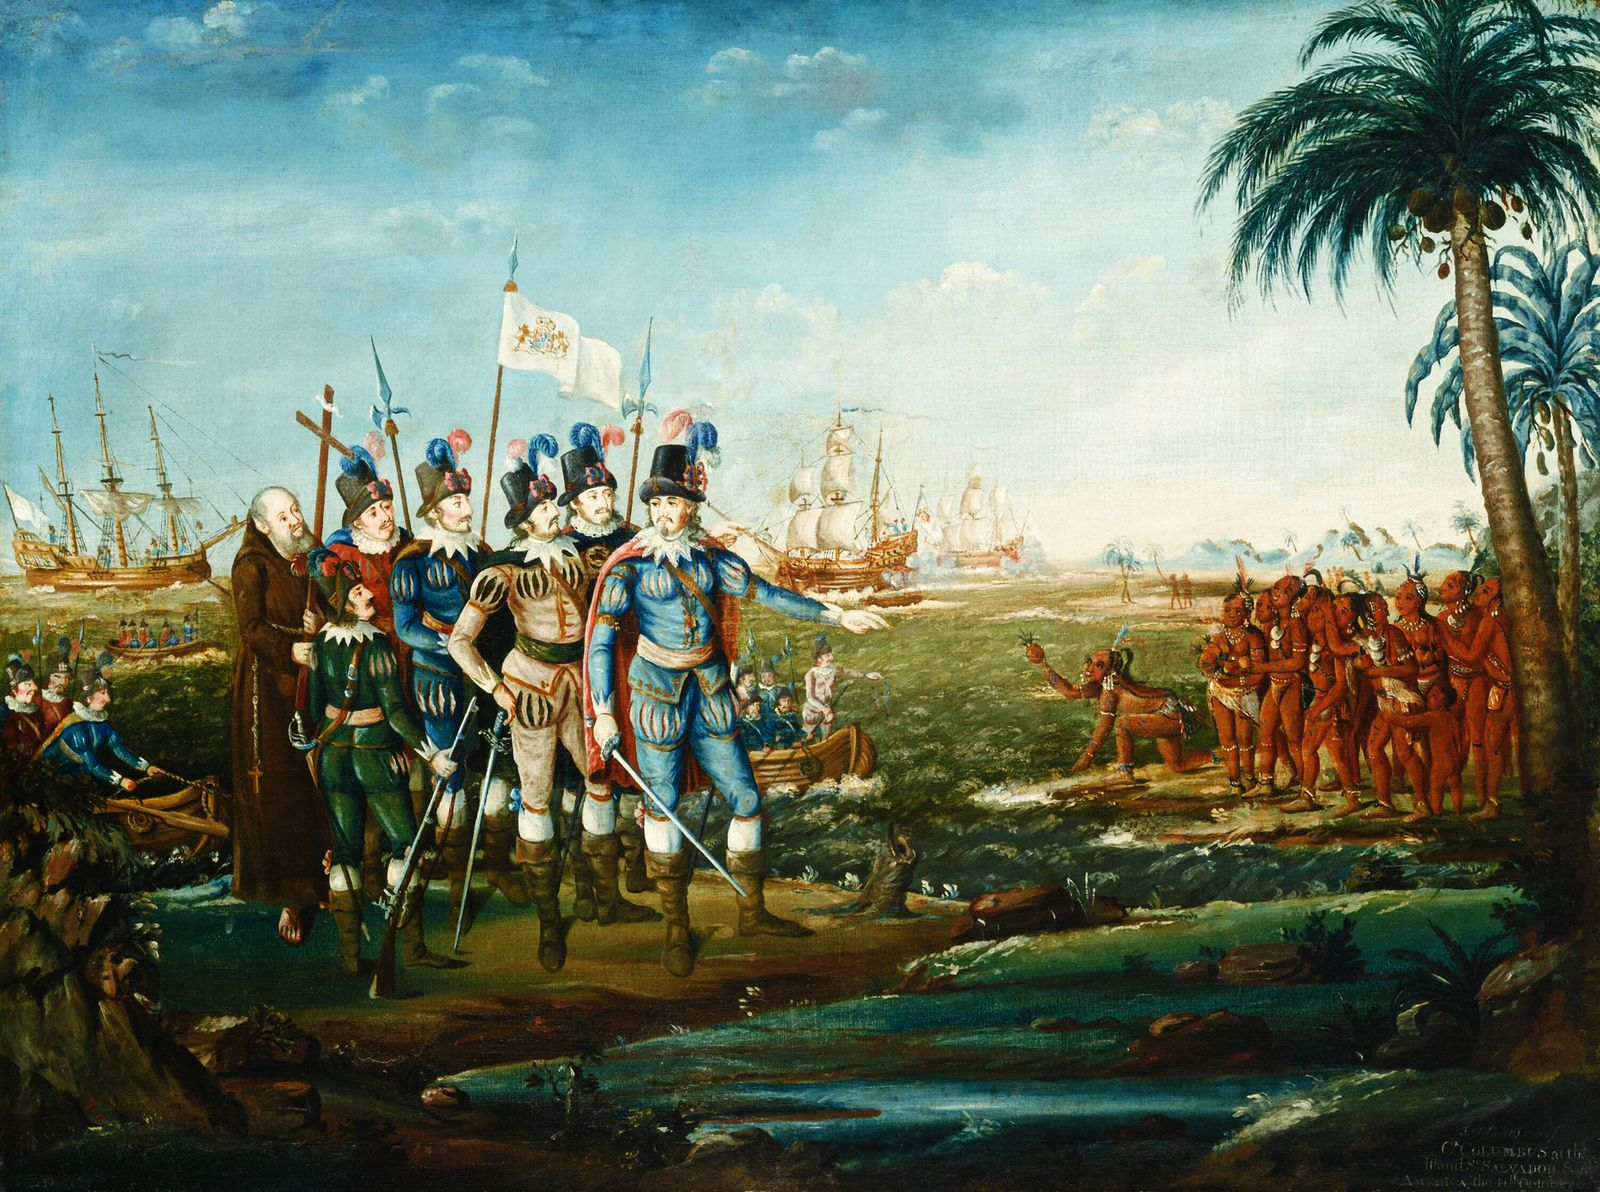 First Landing of Christopher Columbus, by Frederick Kemmelmeyer, c. 1800-05, American painting, oil on canvas. Columbus